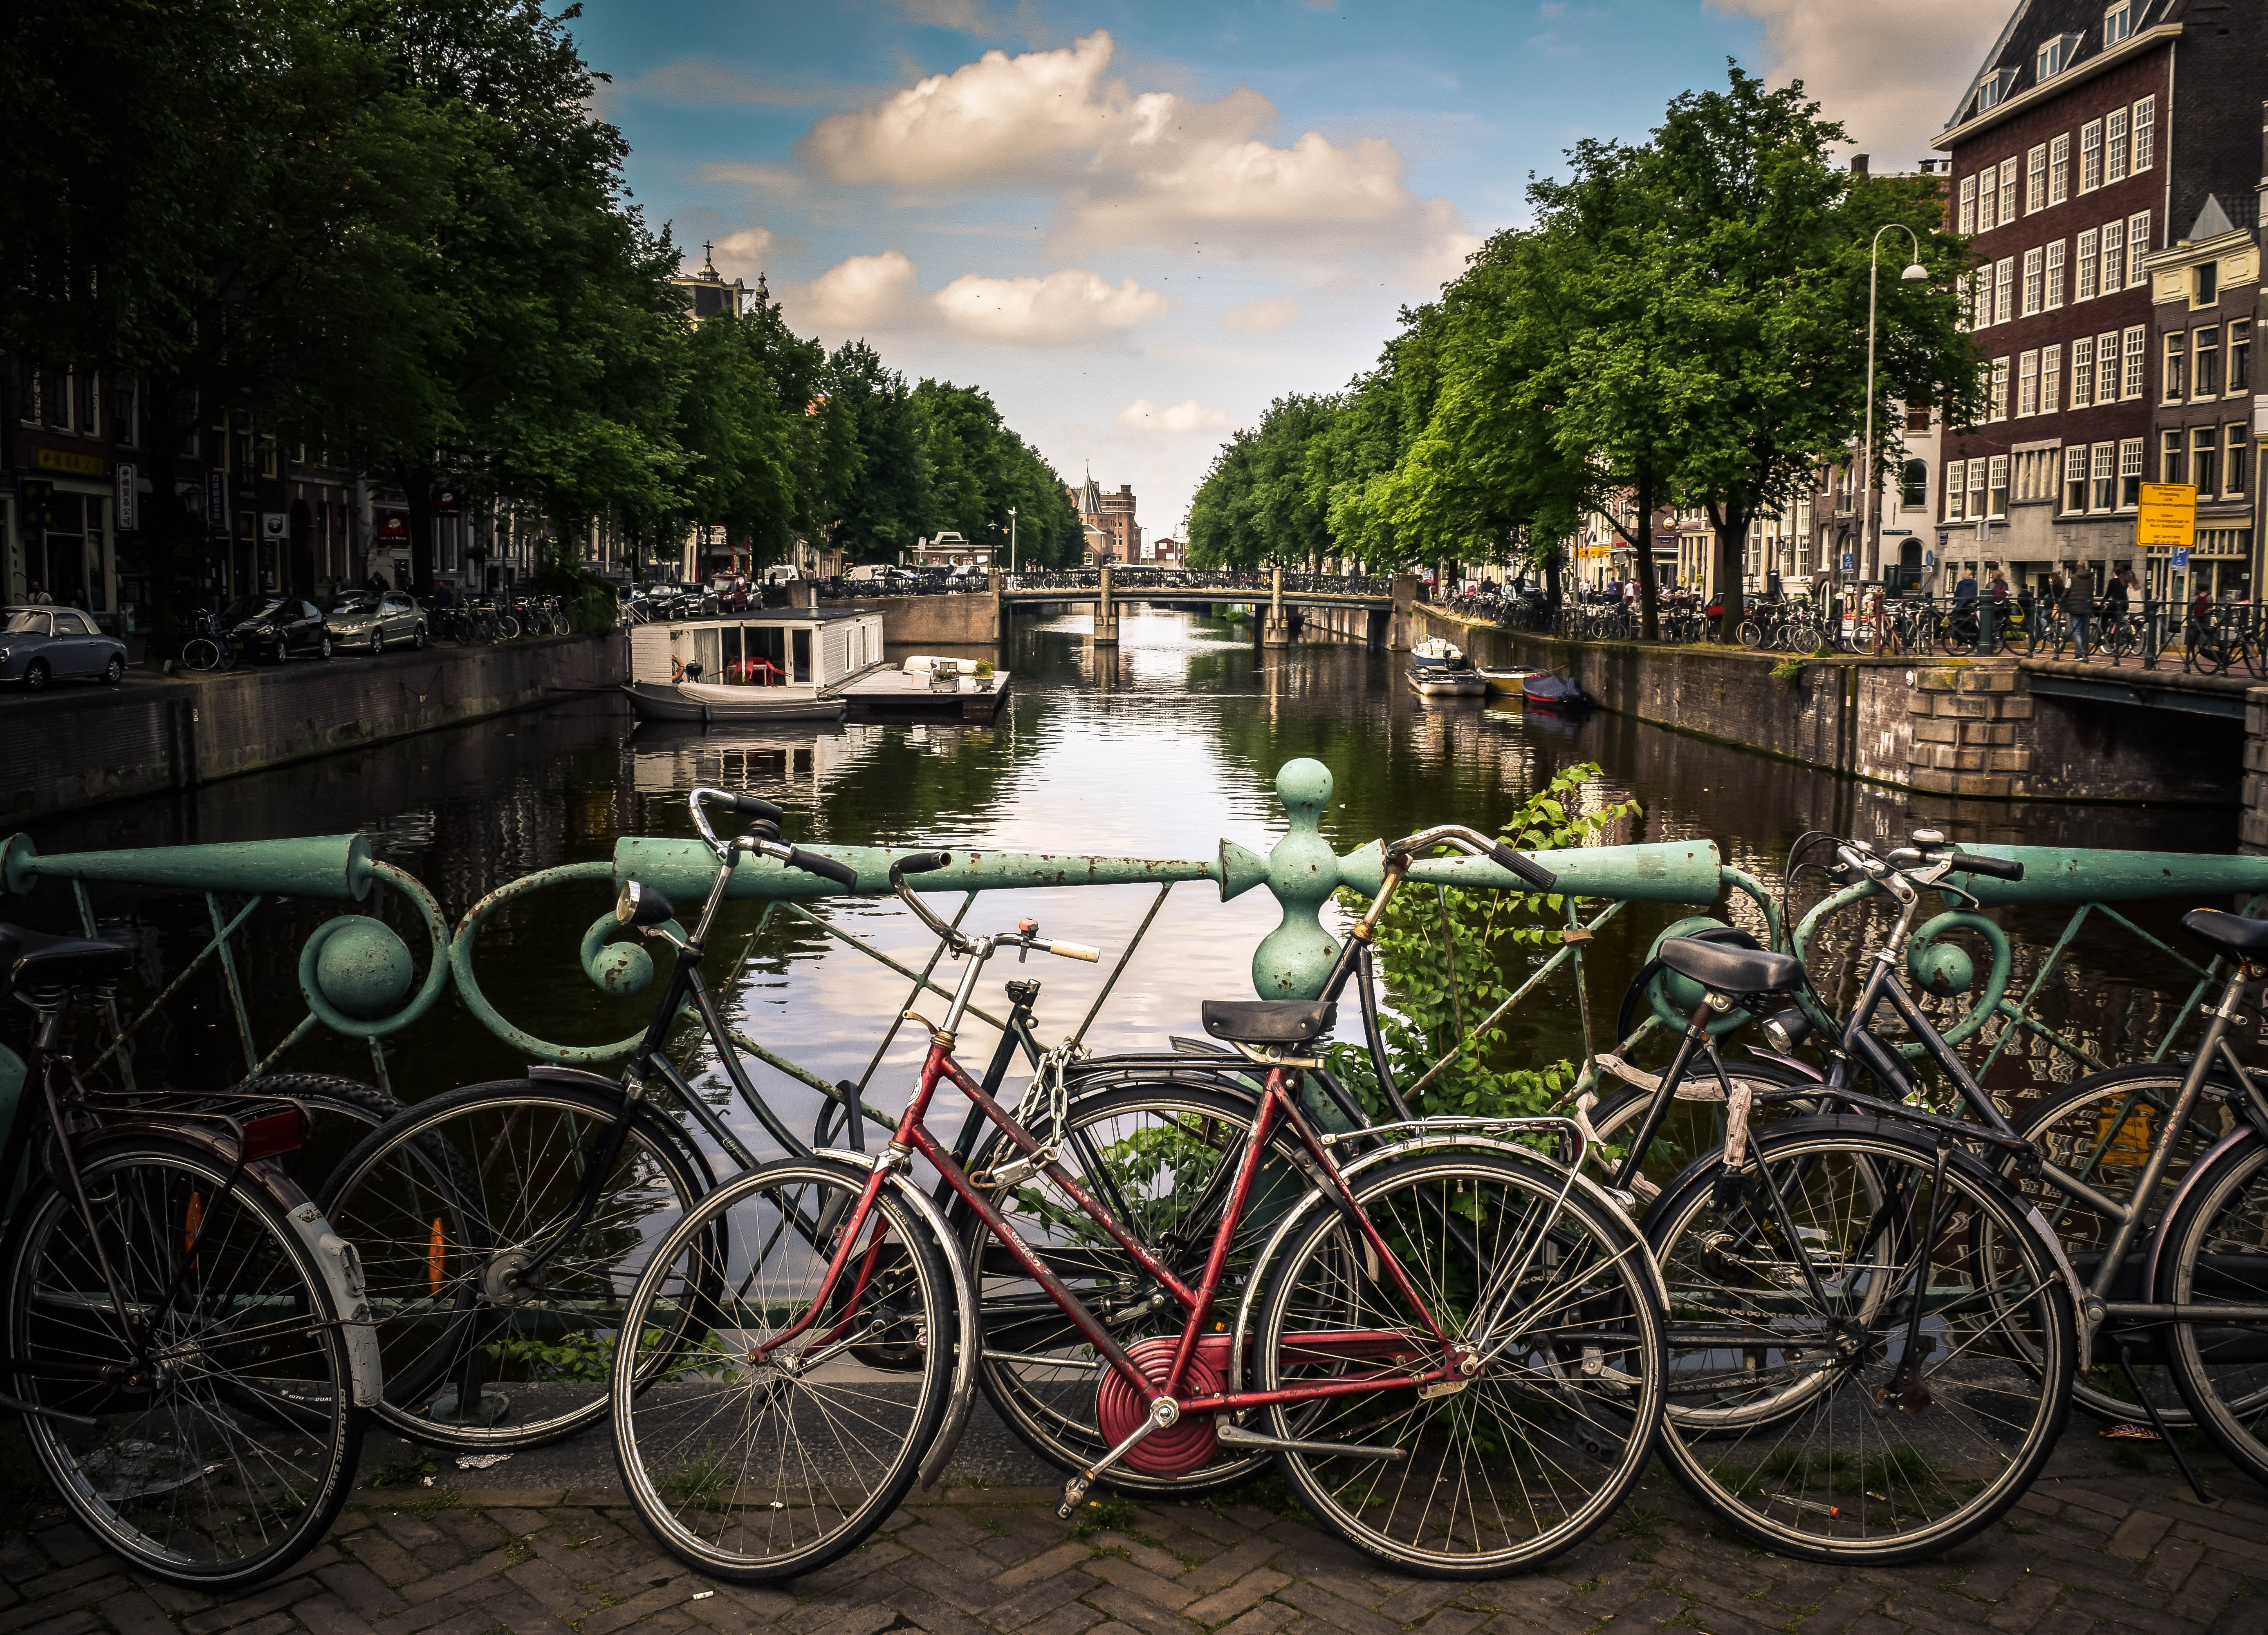 River cruises offer bike tours.